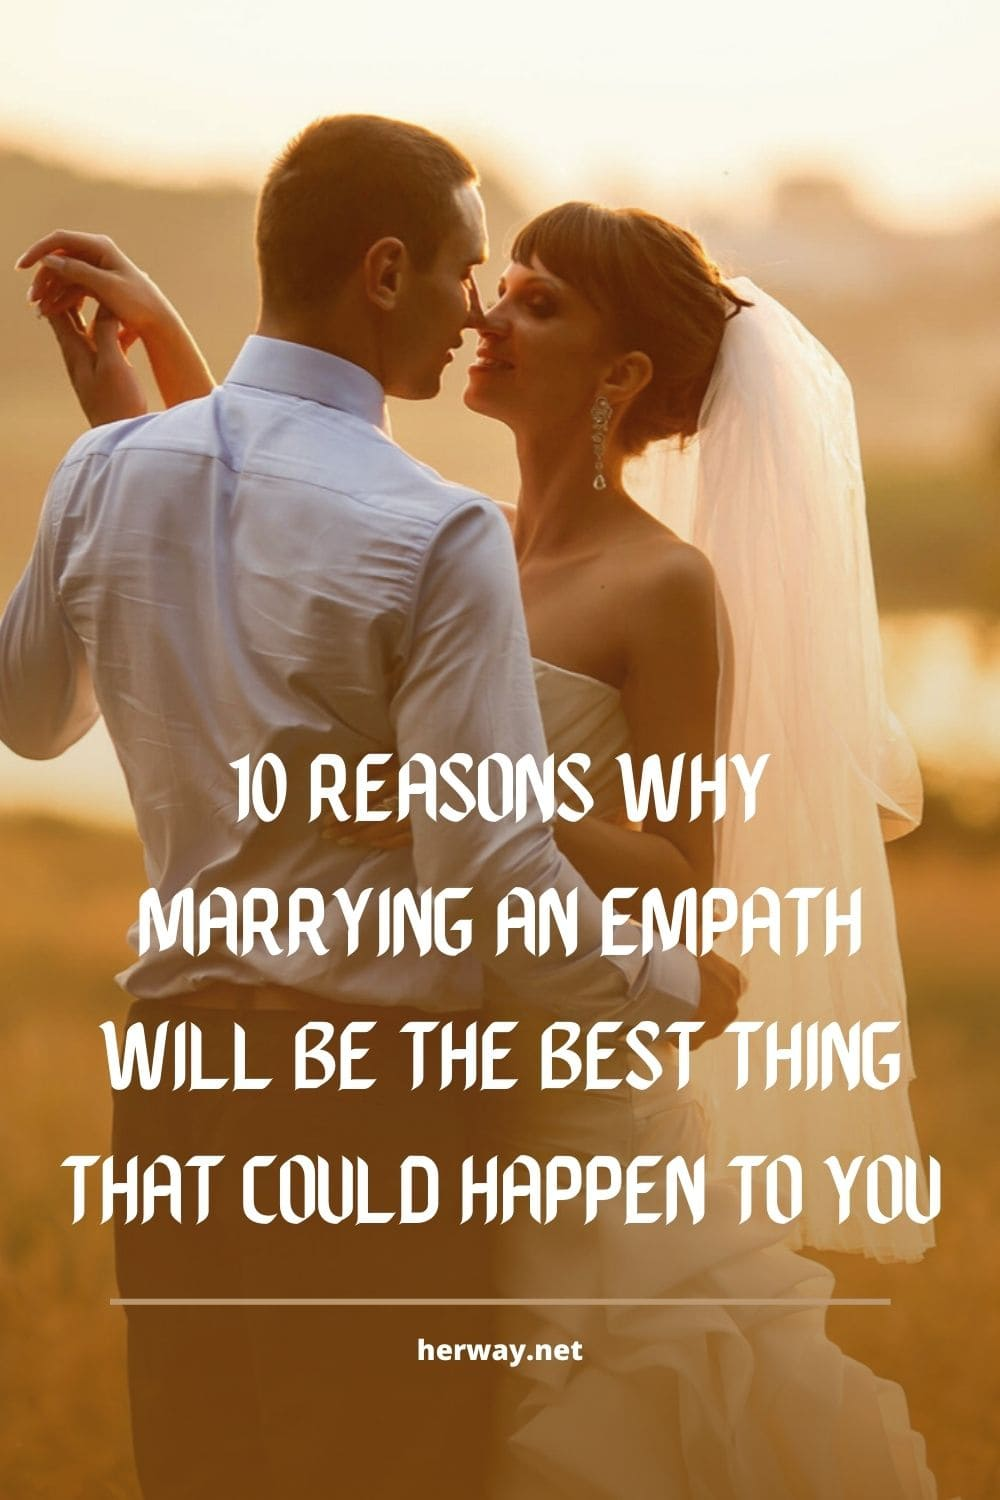 10 Reasons Why Marrying An Empath Will Be The Best Thing That Could Happen To You